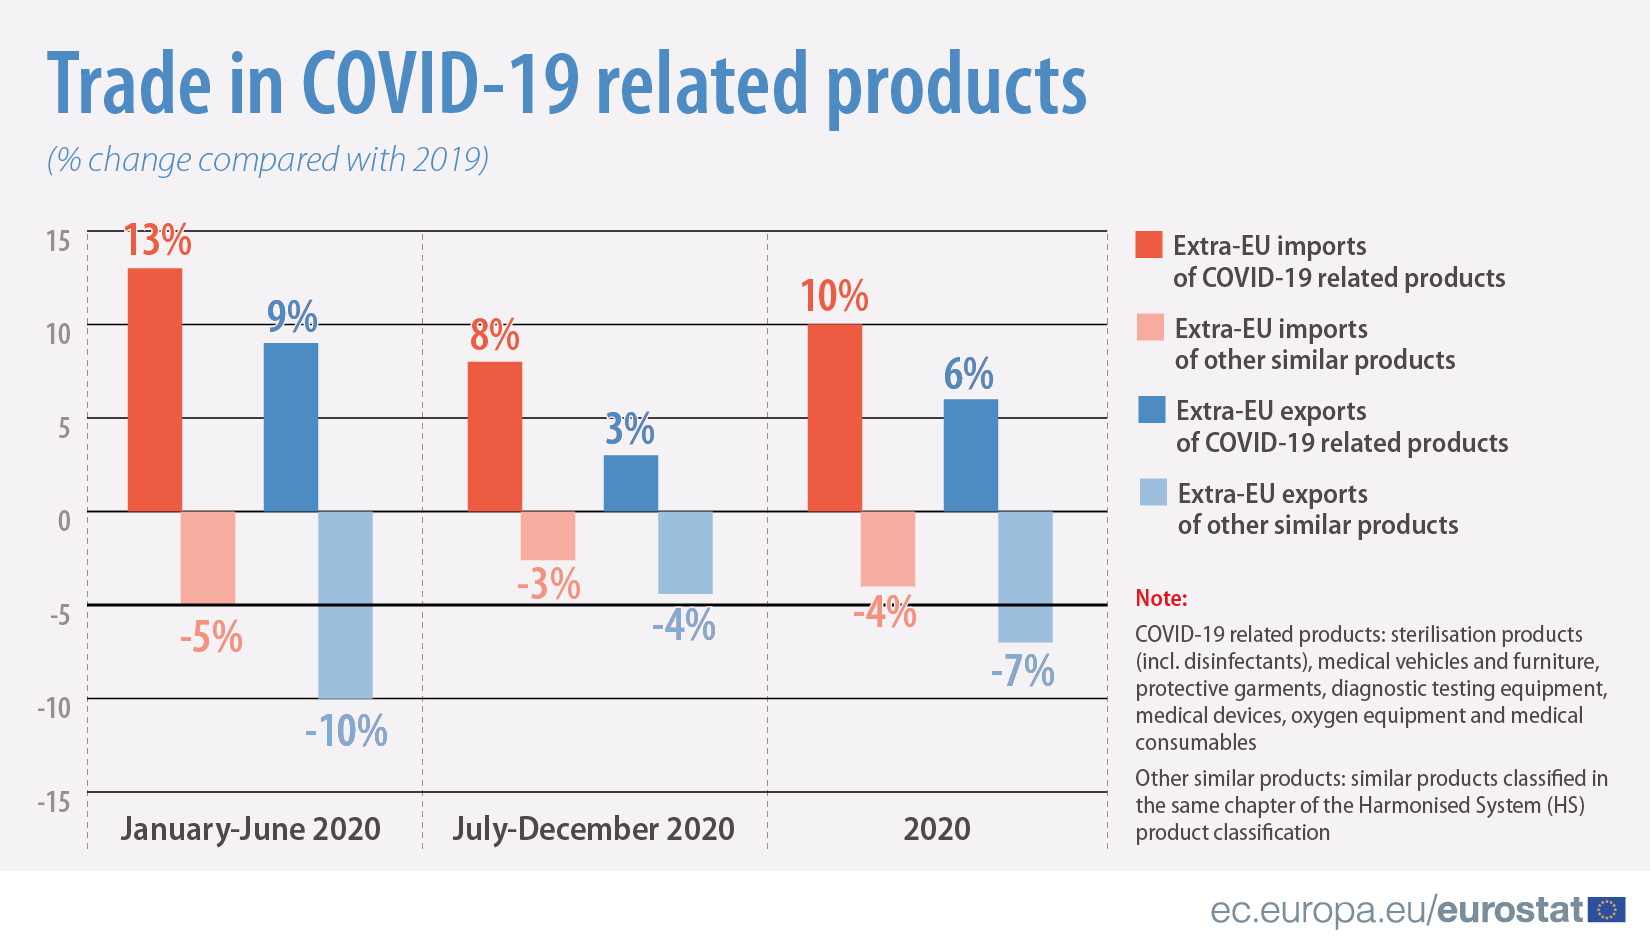 Trade in COVID-19 related products (% change compared with 2019)